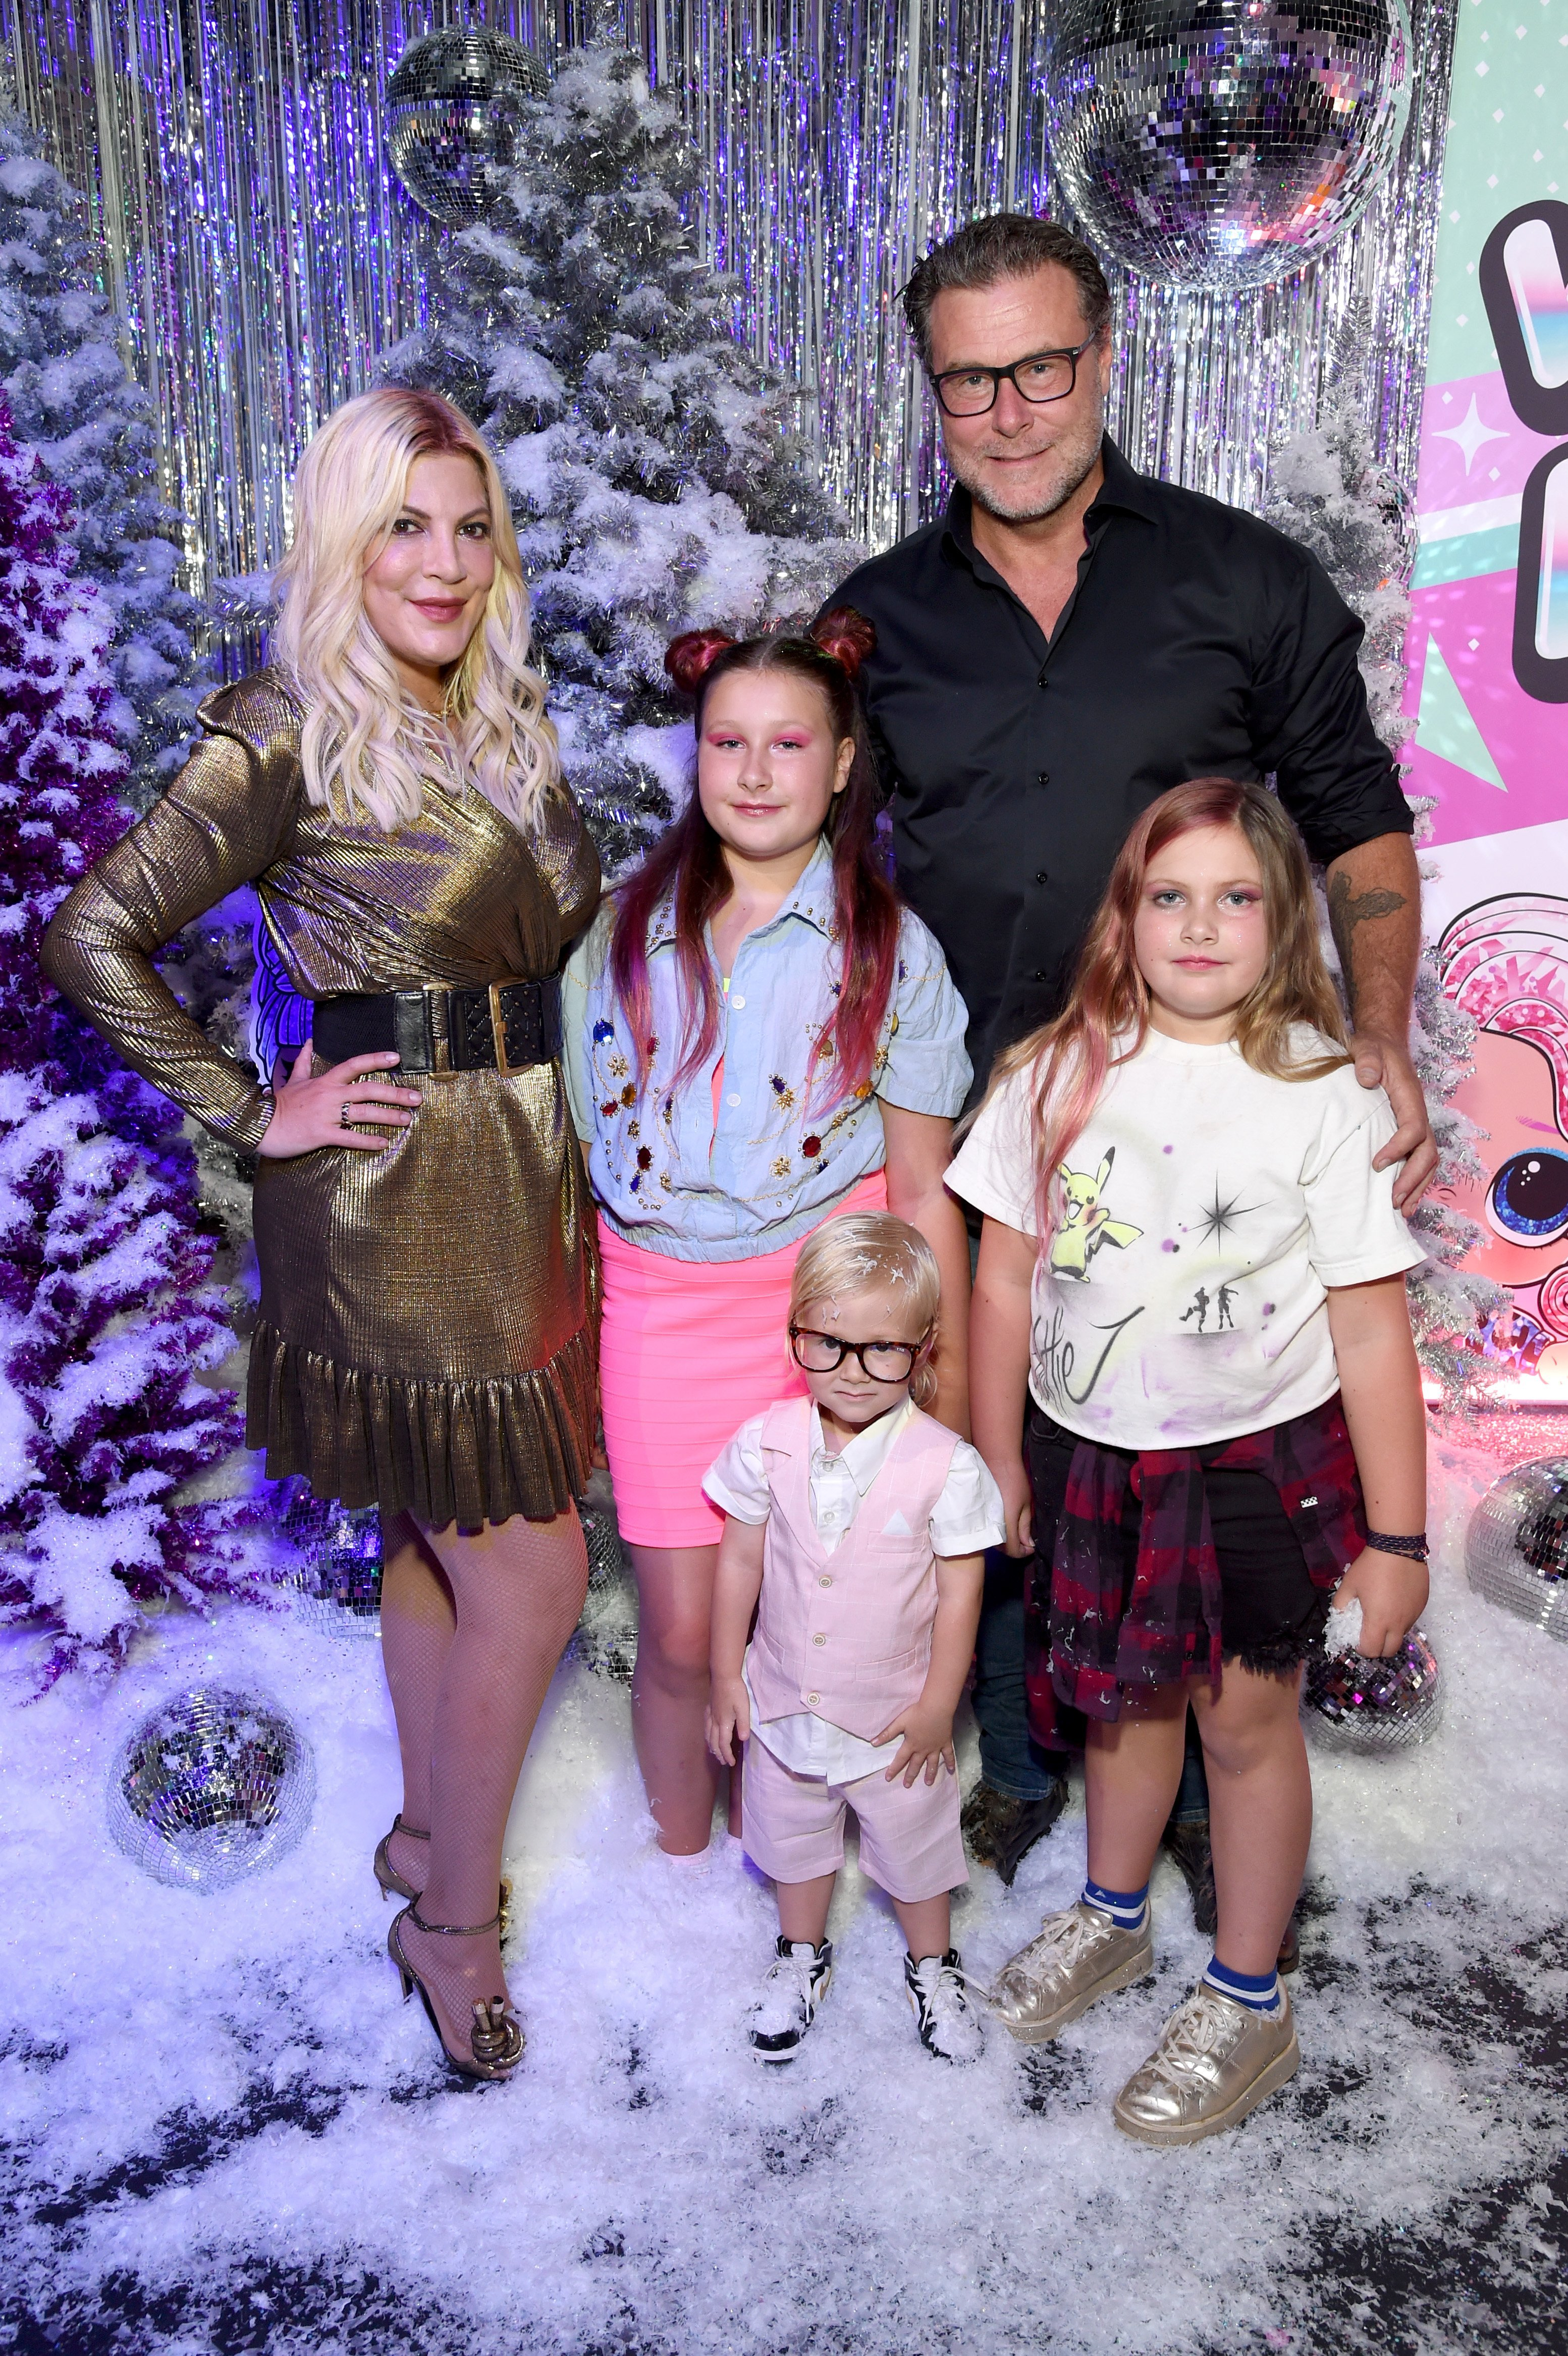 Tori Spelling and Dean McDermot with three of their kids attend L.O.L. Surprise! Winter Disco Launch Party in Los Angeles, California on September 27, 2019 | Photo: Getty Images